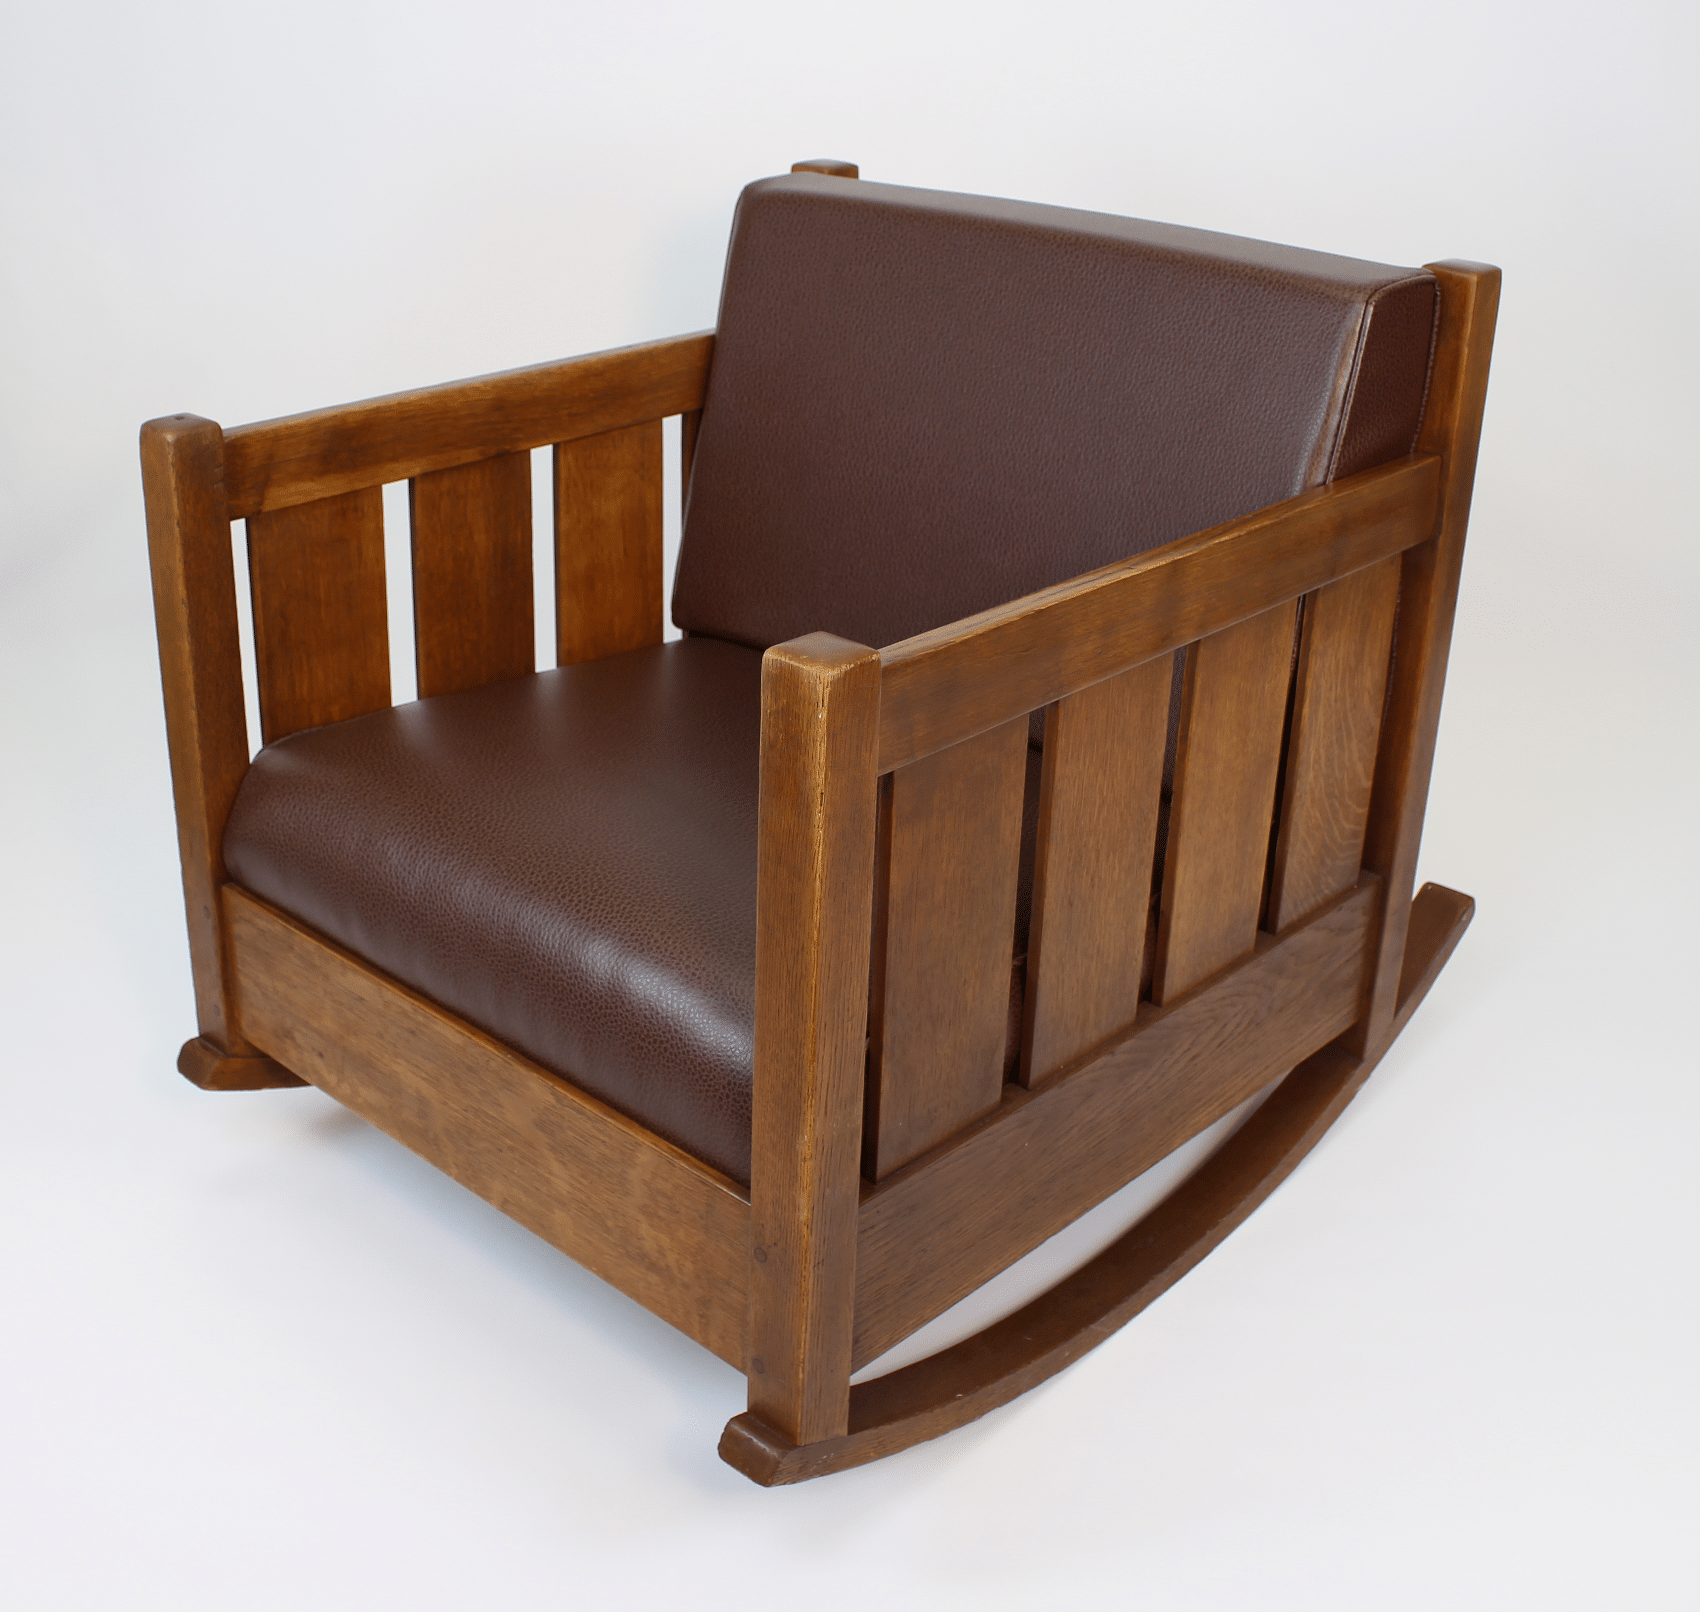 Lu0026JG Stickley Cube Rocker No. 429